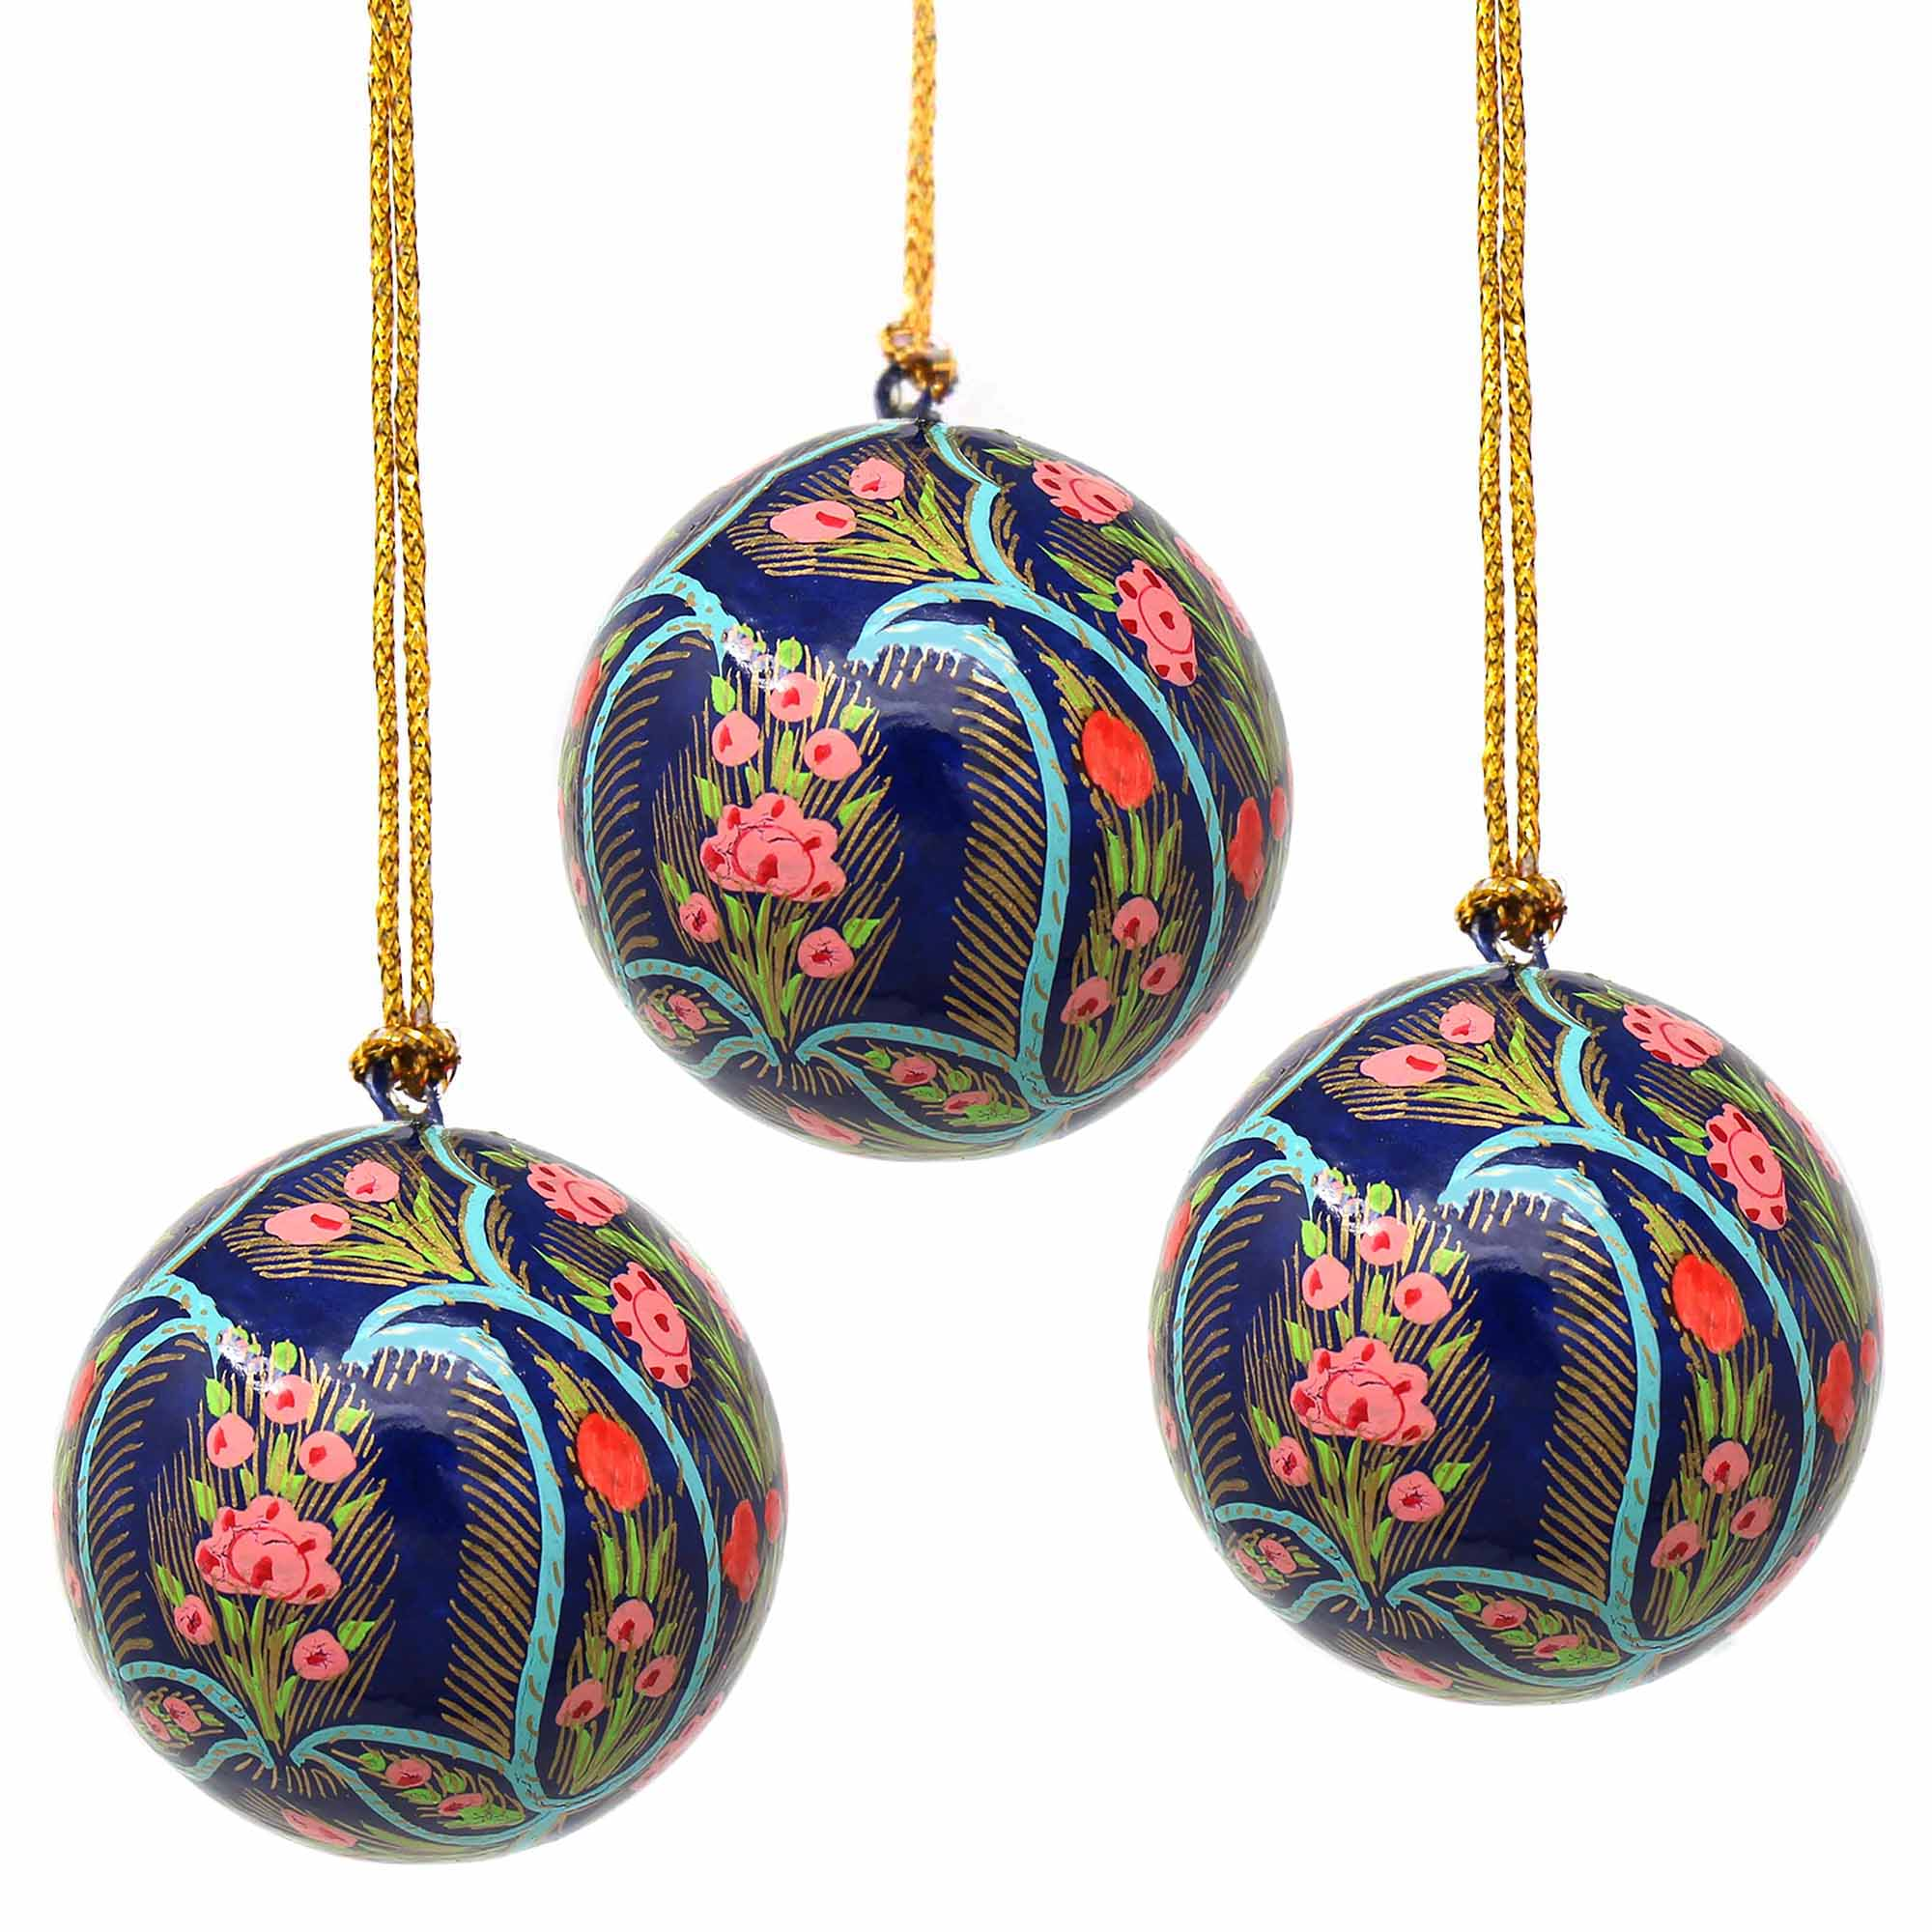 Handpainted Ornaments, Coral & Blue Floral - Pack of 3